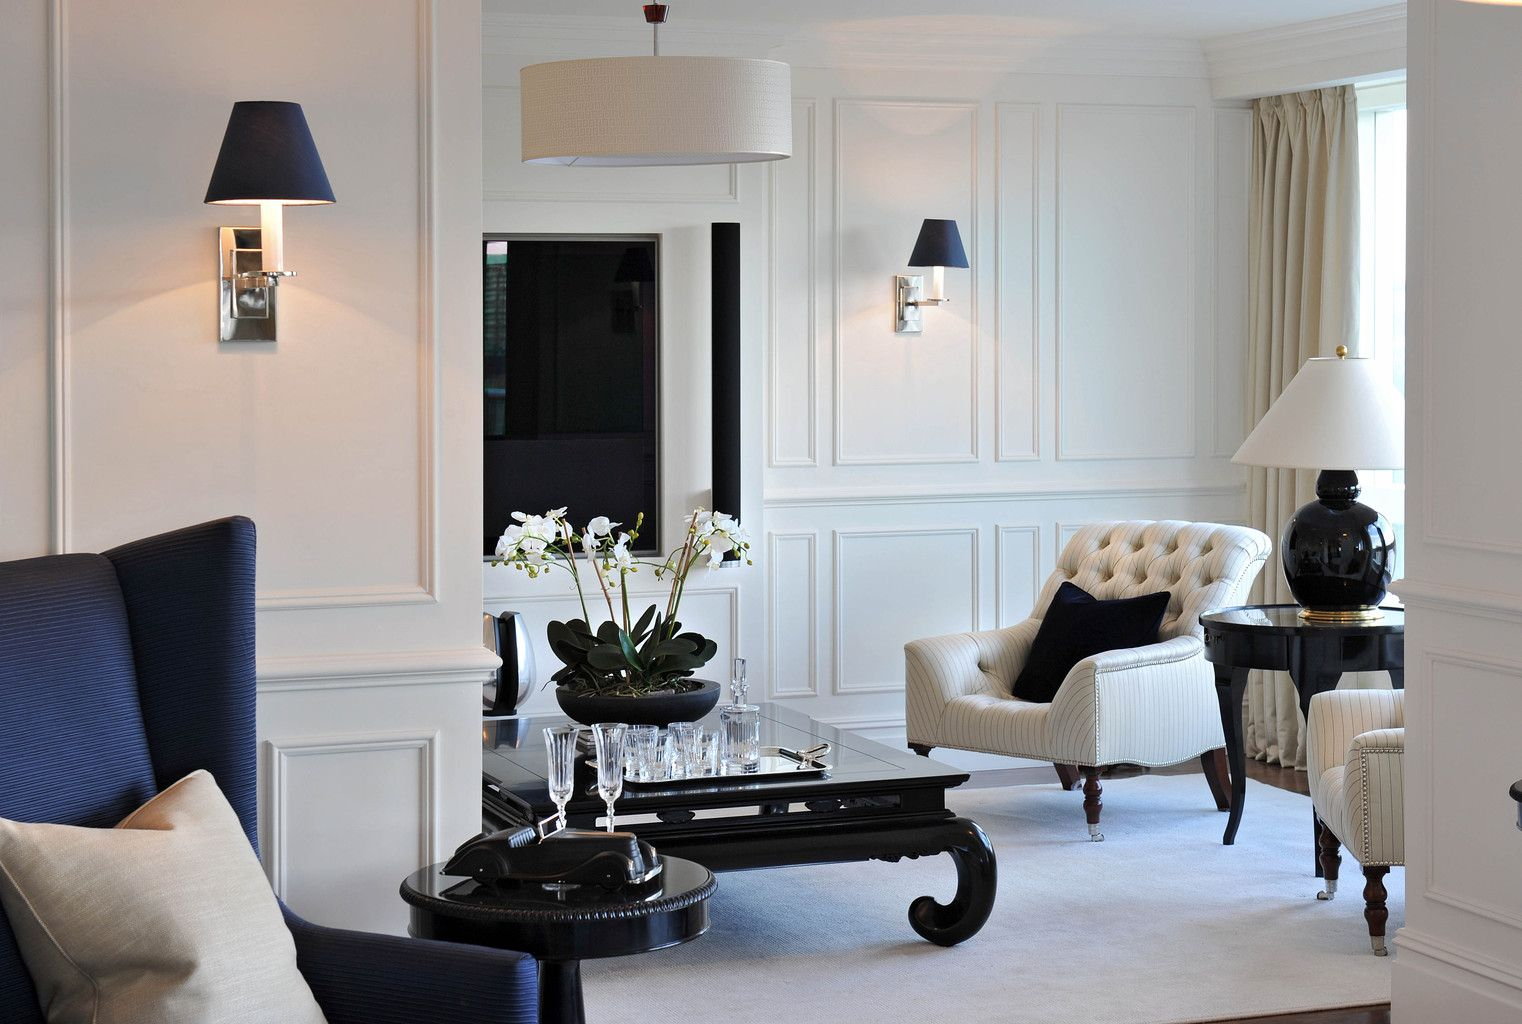 Contemporary London Riverside Open Plan Apartment Completed By THE STUDIO At Harrods